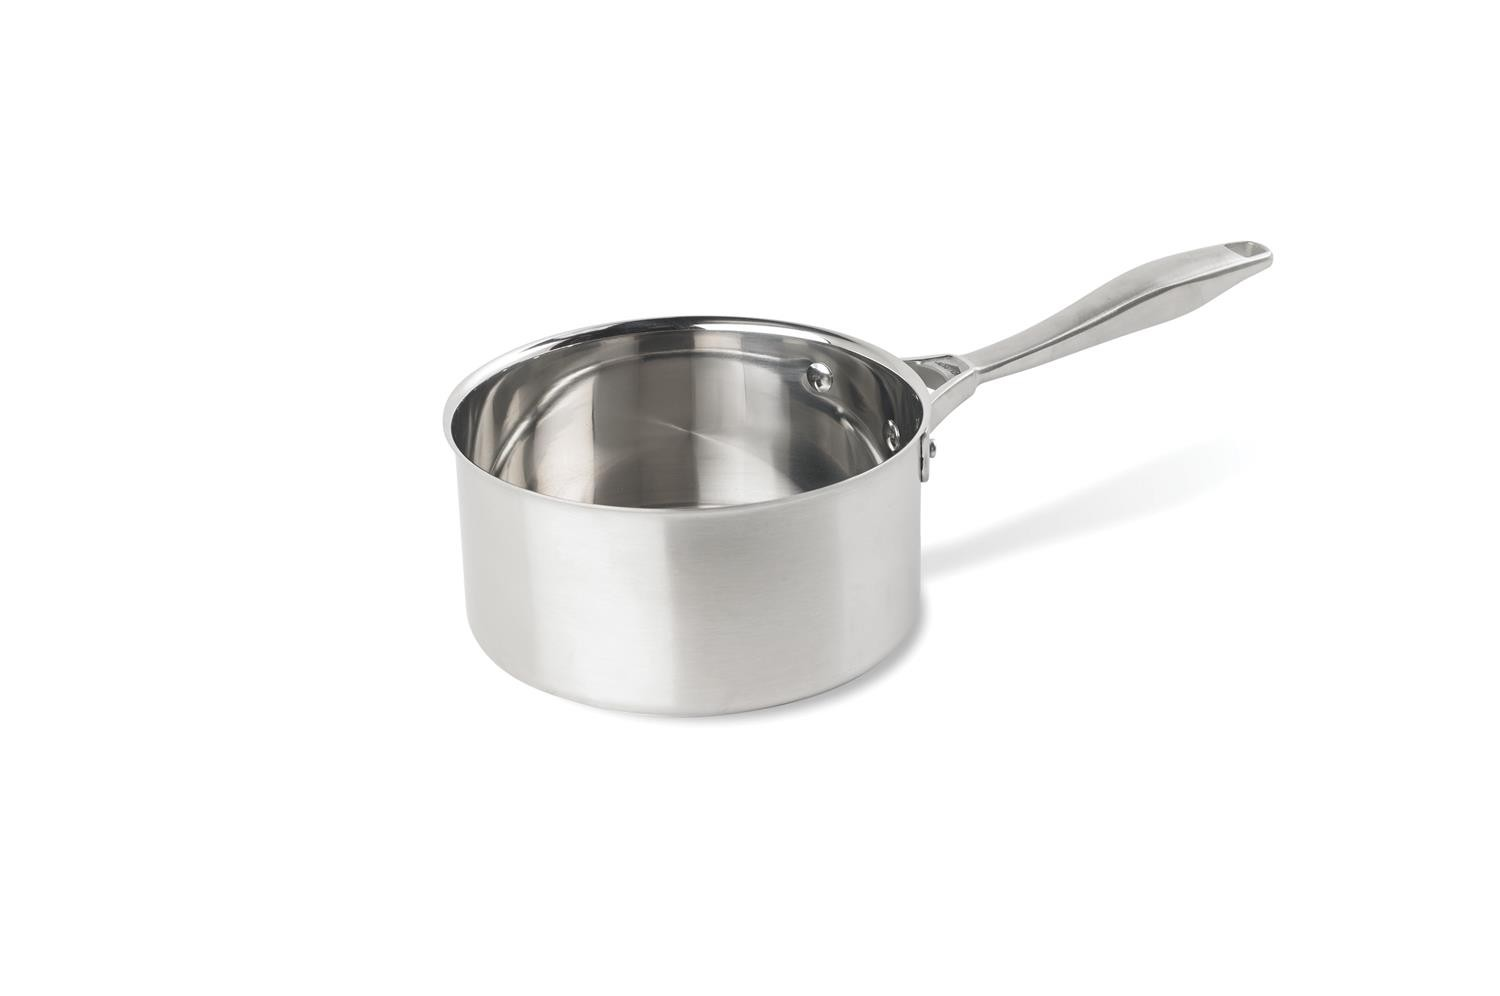 Vollrath 47741 Intrigue Stainless Steel Sauce Pan 3-1/4 Qt.